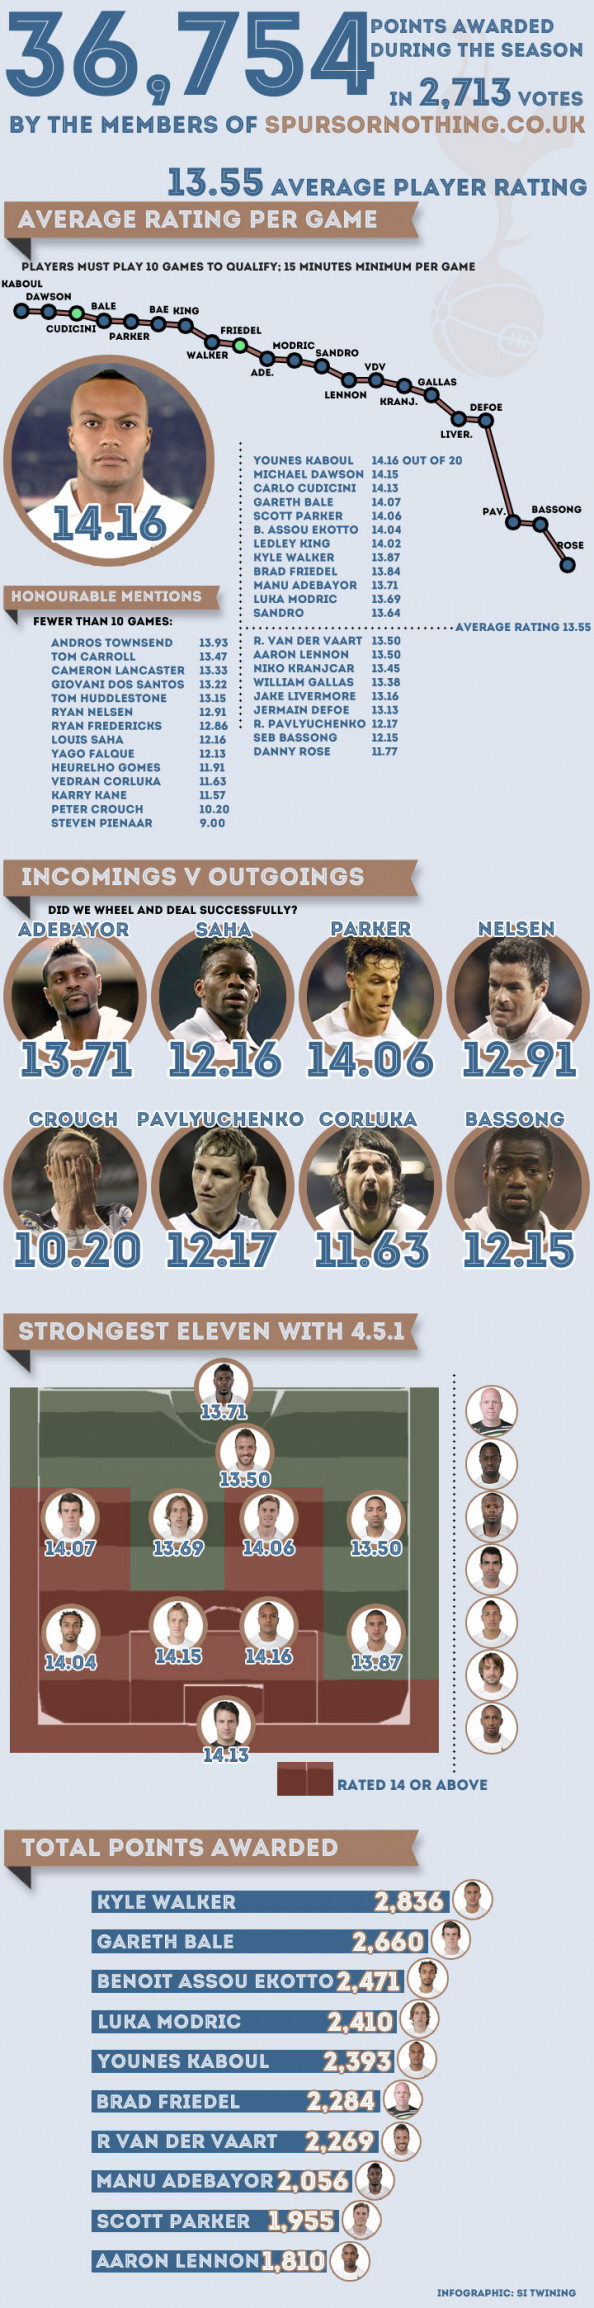 Tottenham Hotspur player ratings 2011/12 Infographic